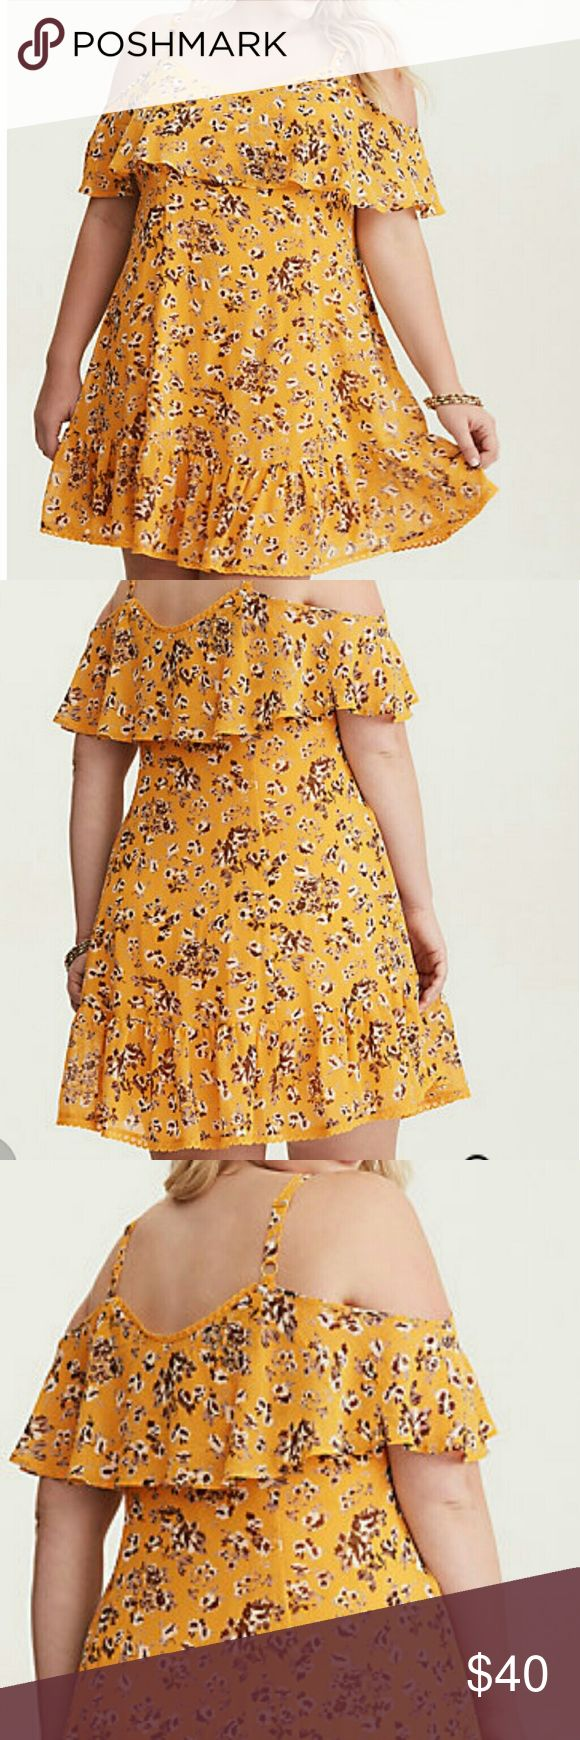 Torrid Brand New Super Cute Dress Brand New Yellow Floral Print Chiffon Cold Shoulder Trapeze Dress. A flounce overlay on the bodice lends delicate, floaty quality, with lace trim and a ruffled hem offering flirty appeal.  Chiffon fabric V-neck flounce neck  Cold shoulder sleeves No waist Mini length  Torrid Size 00 which is a Large torrid Dresses Mini